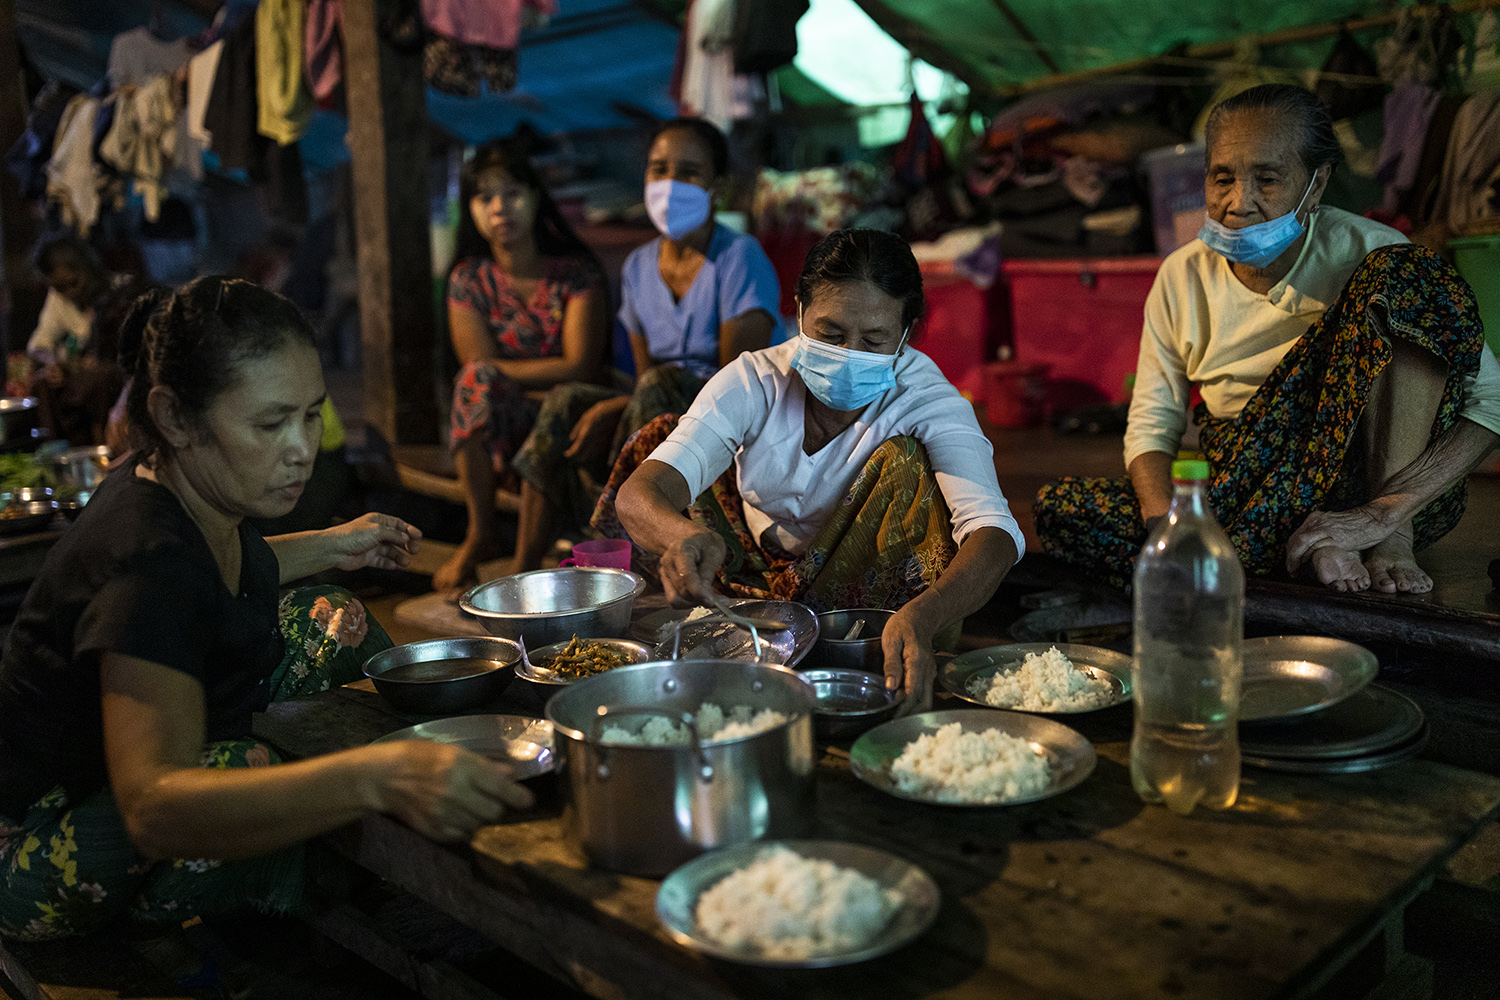 People prepare dinner at the Shitthaung camp for displaced people in Mrauk U, myanmar,